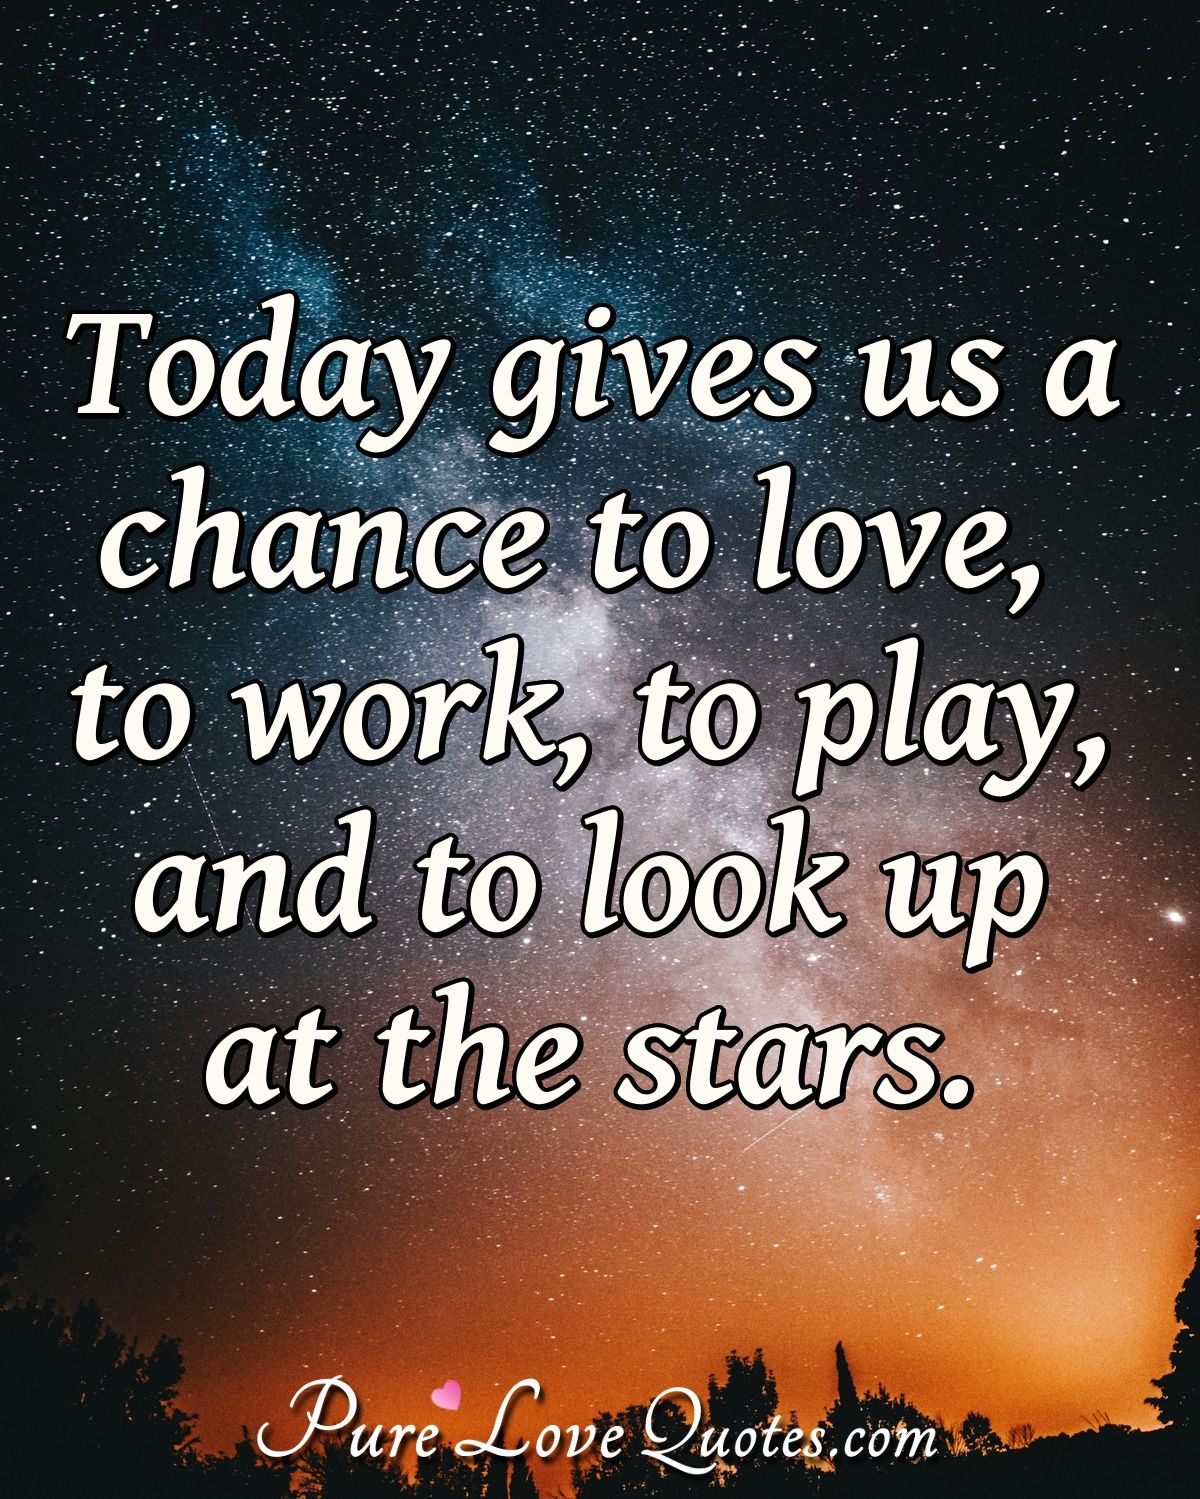 Today gives us a chance to love, to work, to play, and to look up at the stars.